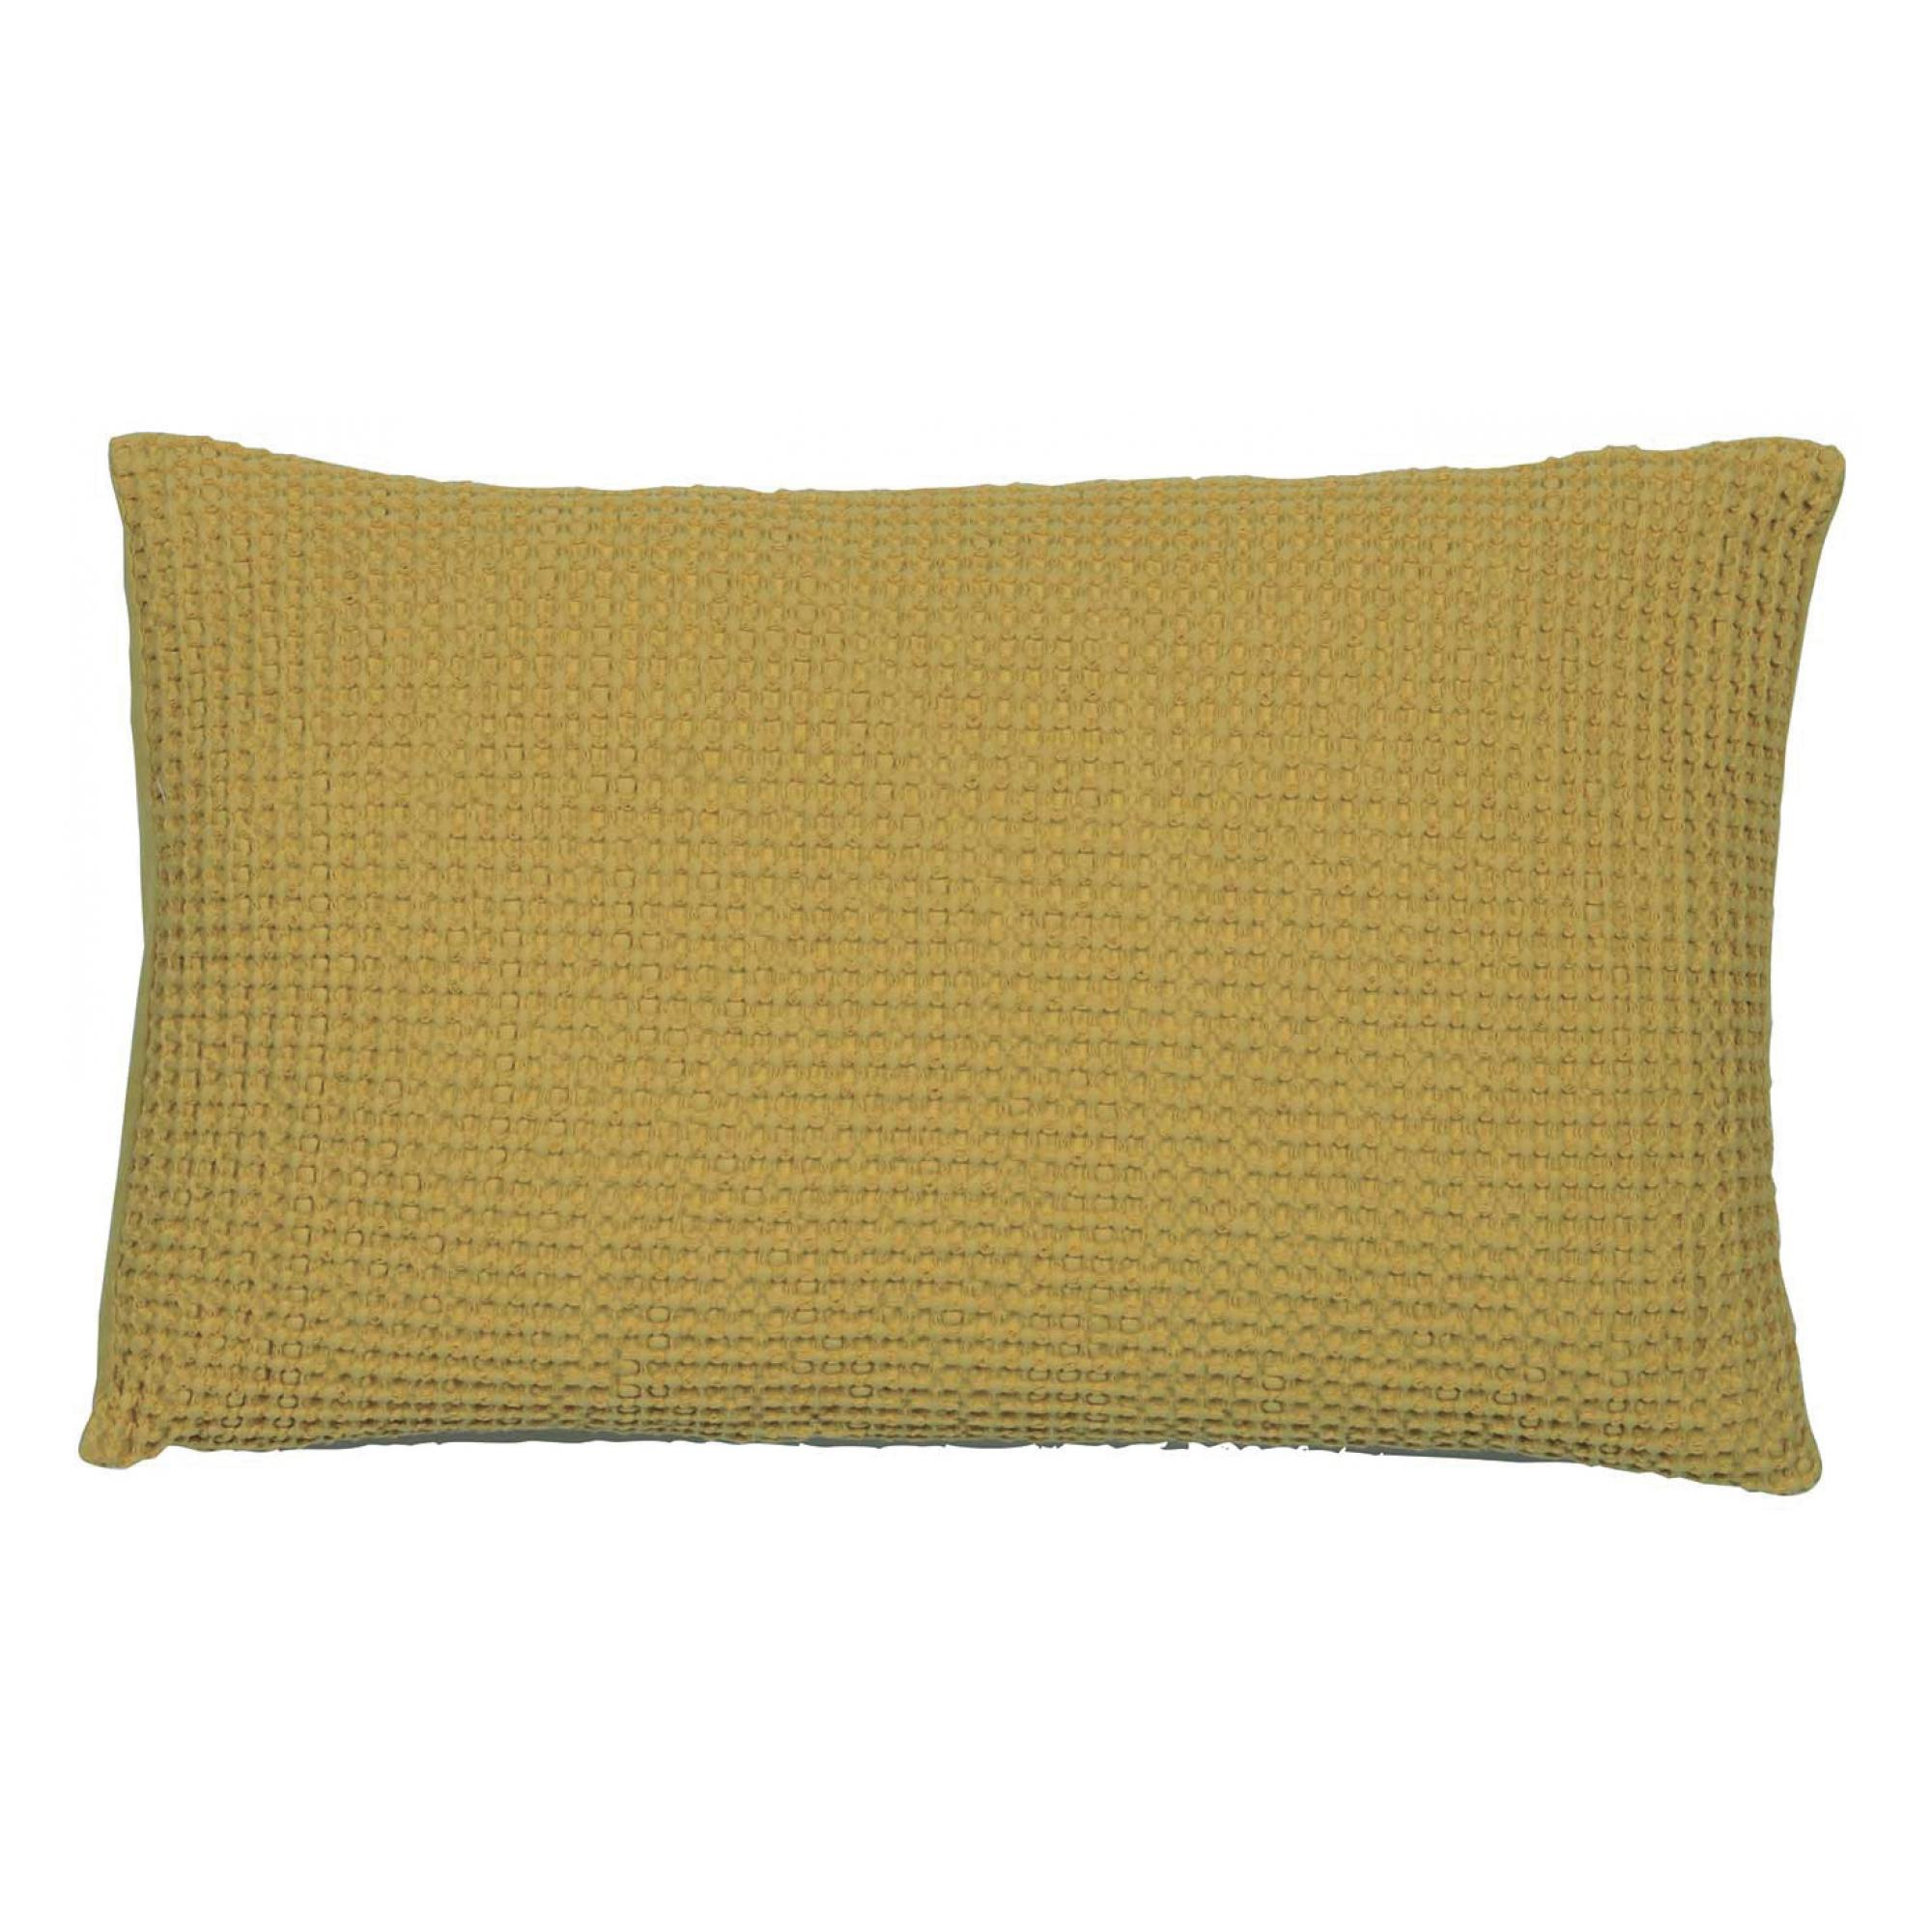 Coussin  en coton badiane 30 x 50 (photo)